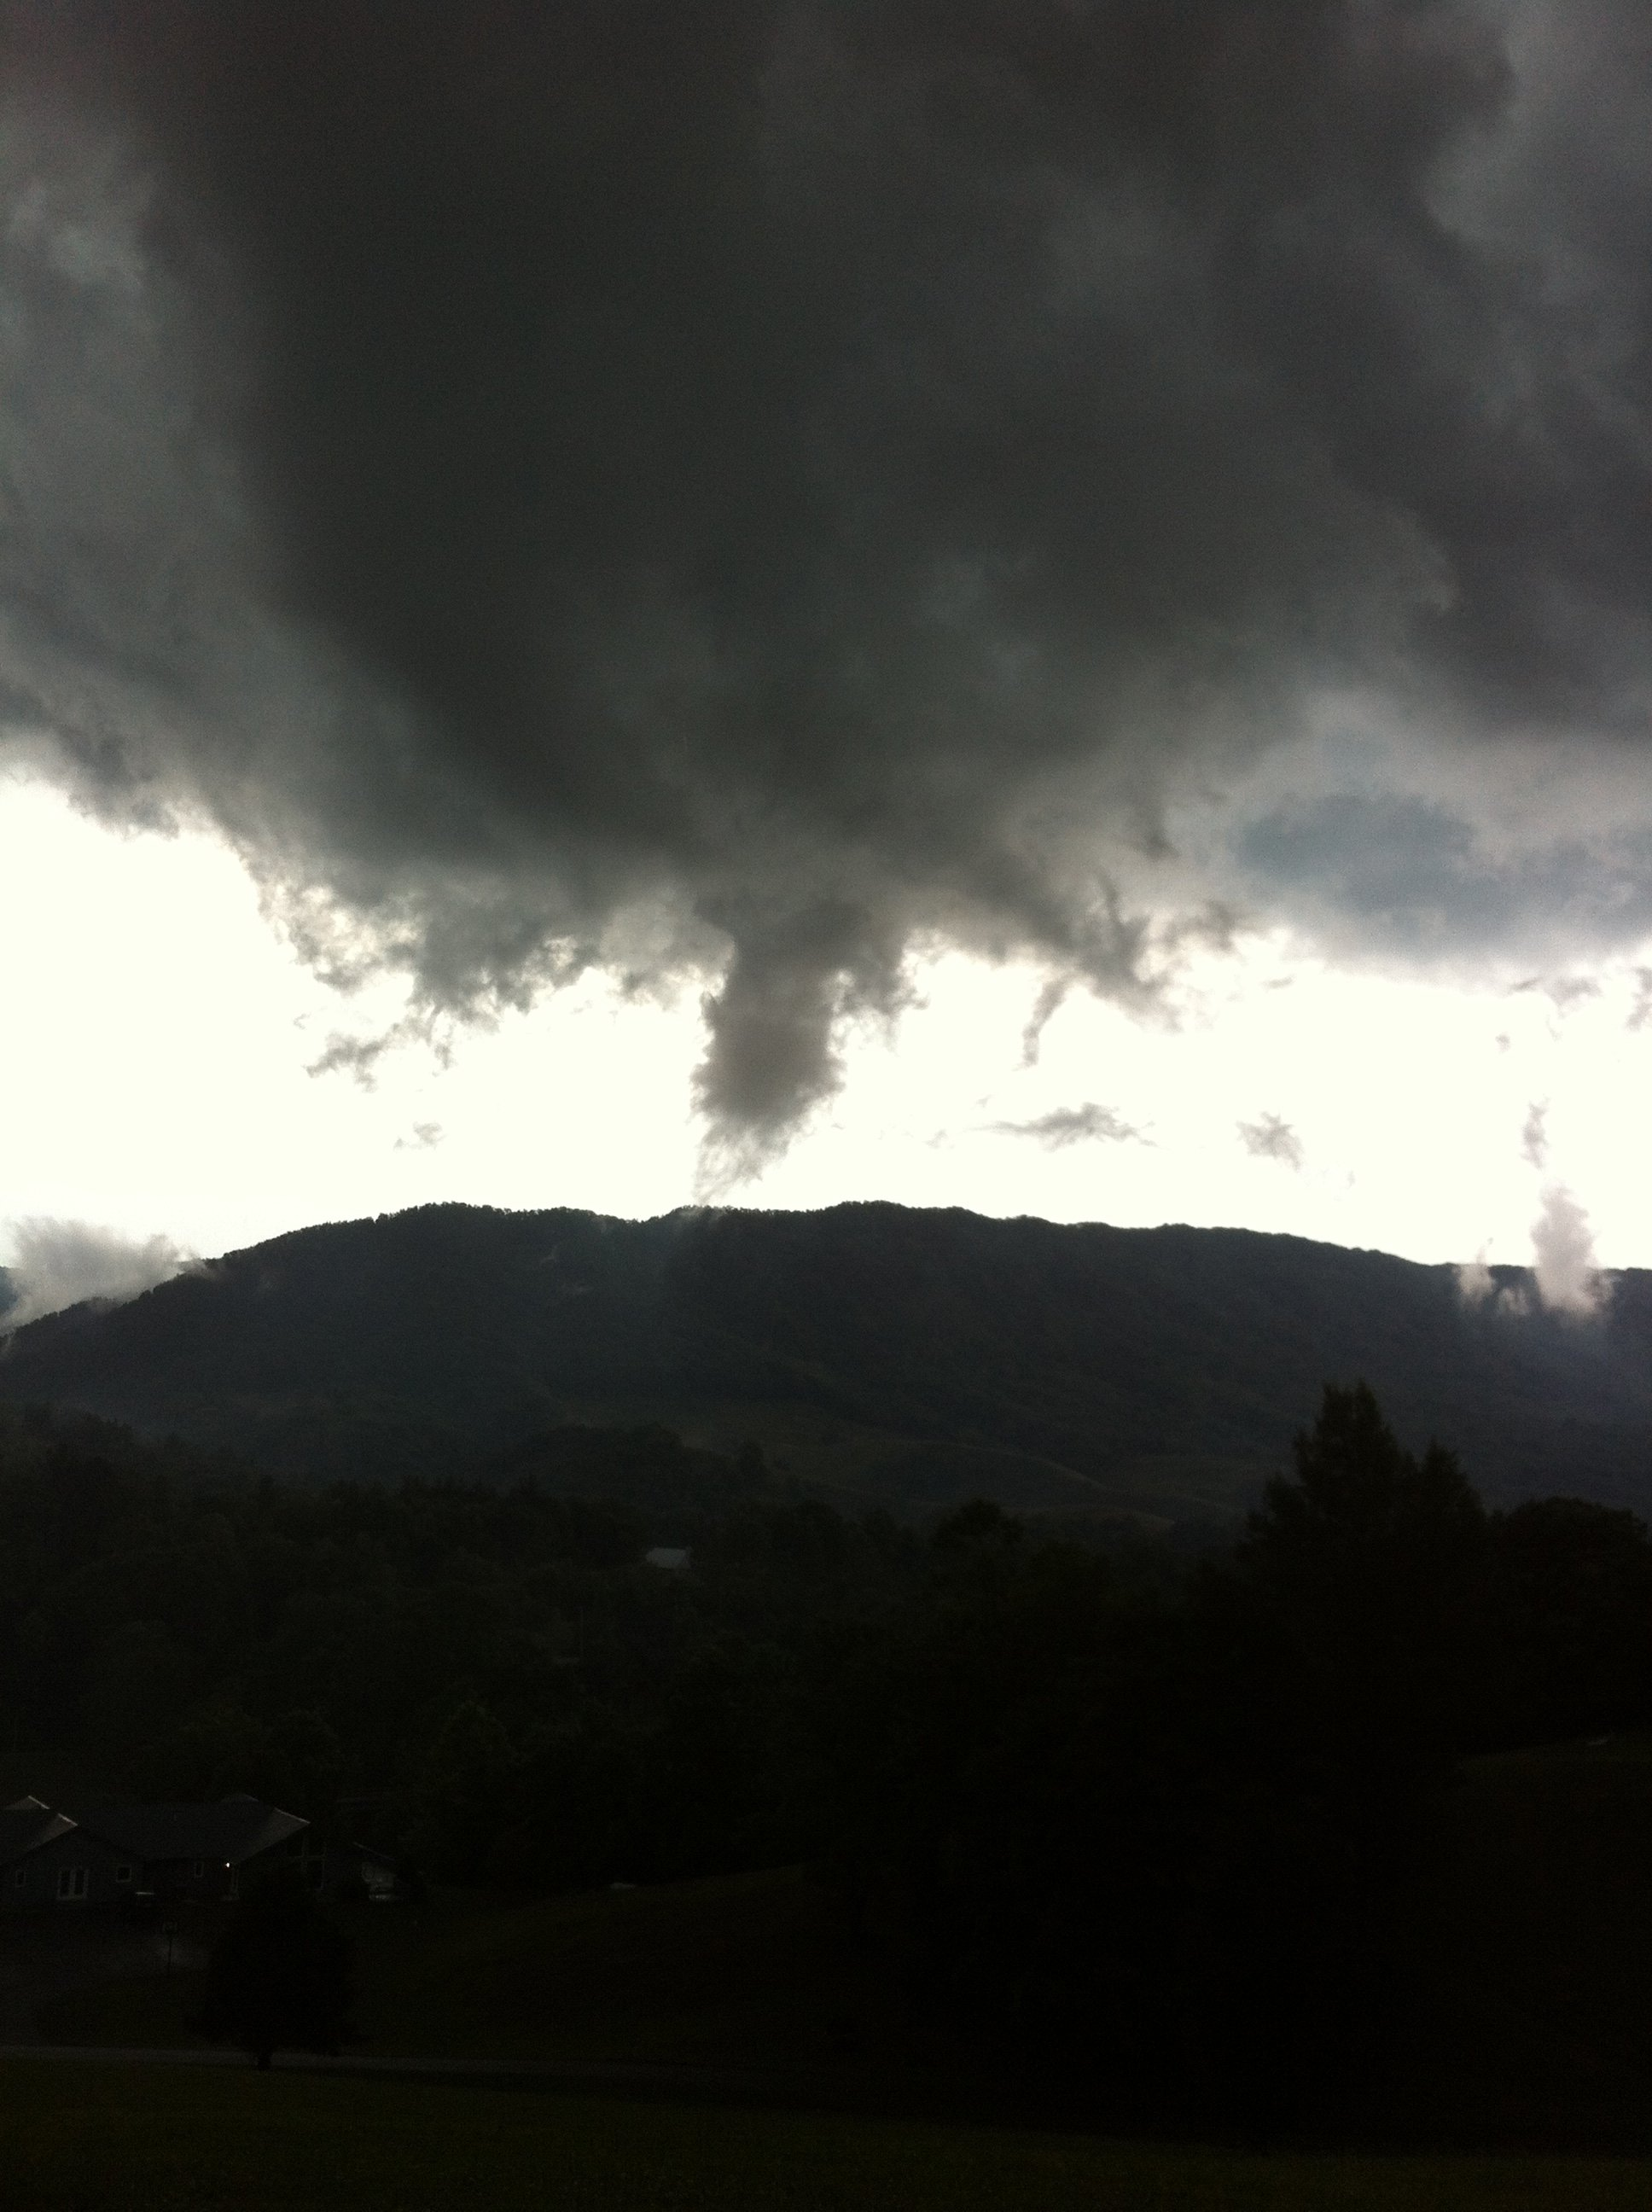 Tazewell, from Tina Cline